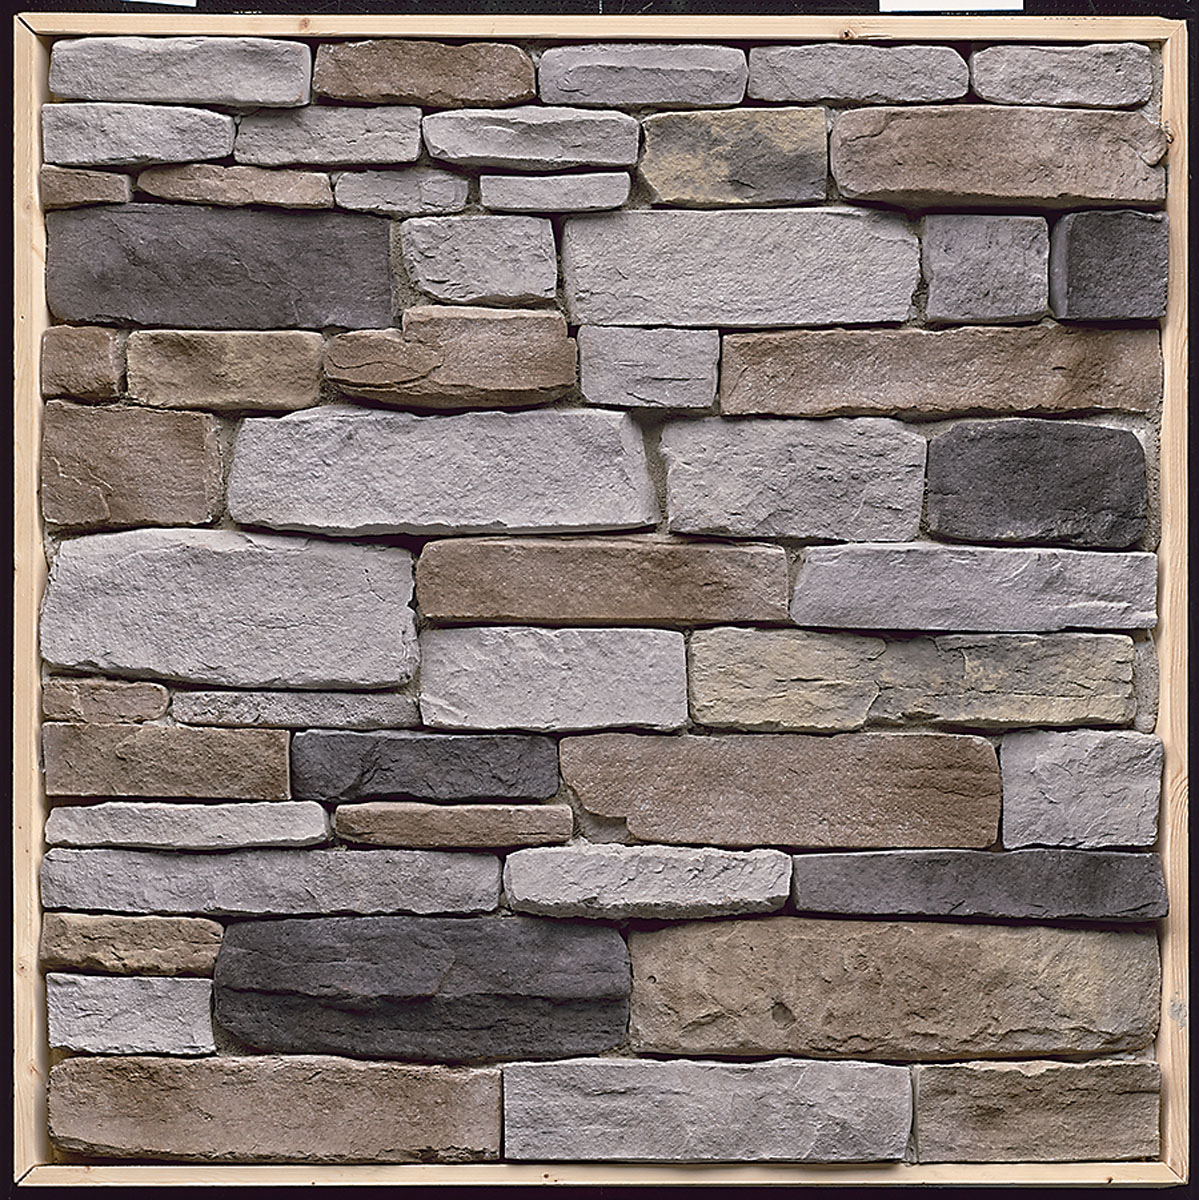 Stonecraft Ledgestone Pennsylvania Flats Manufactured Stone Supply